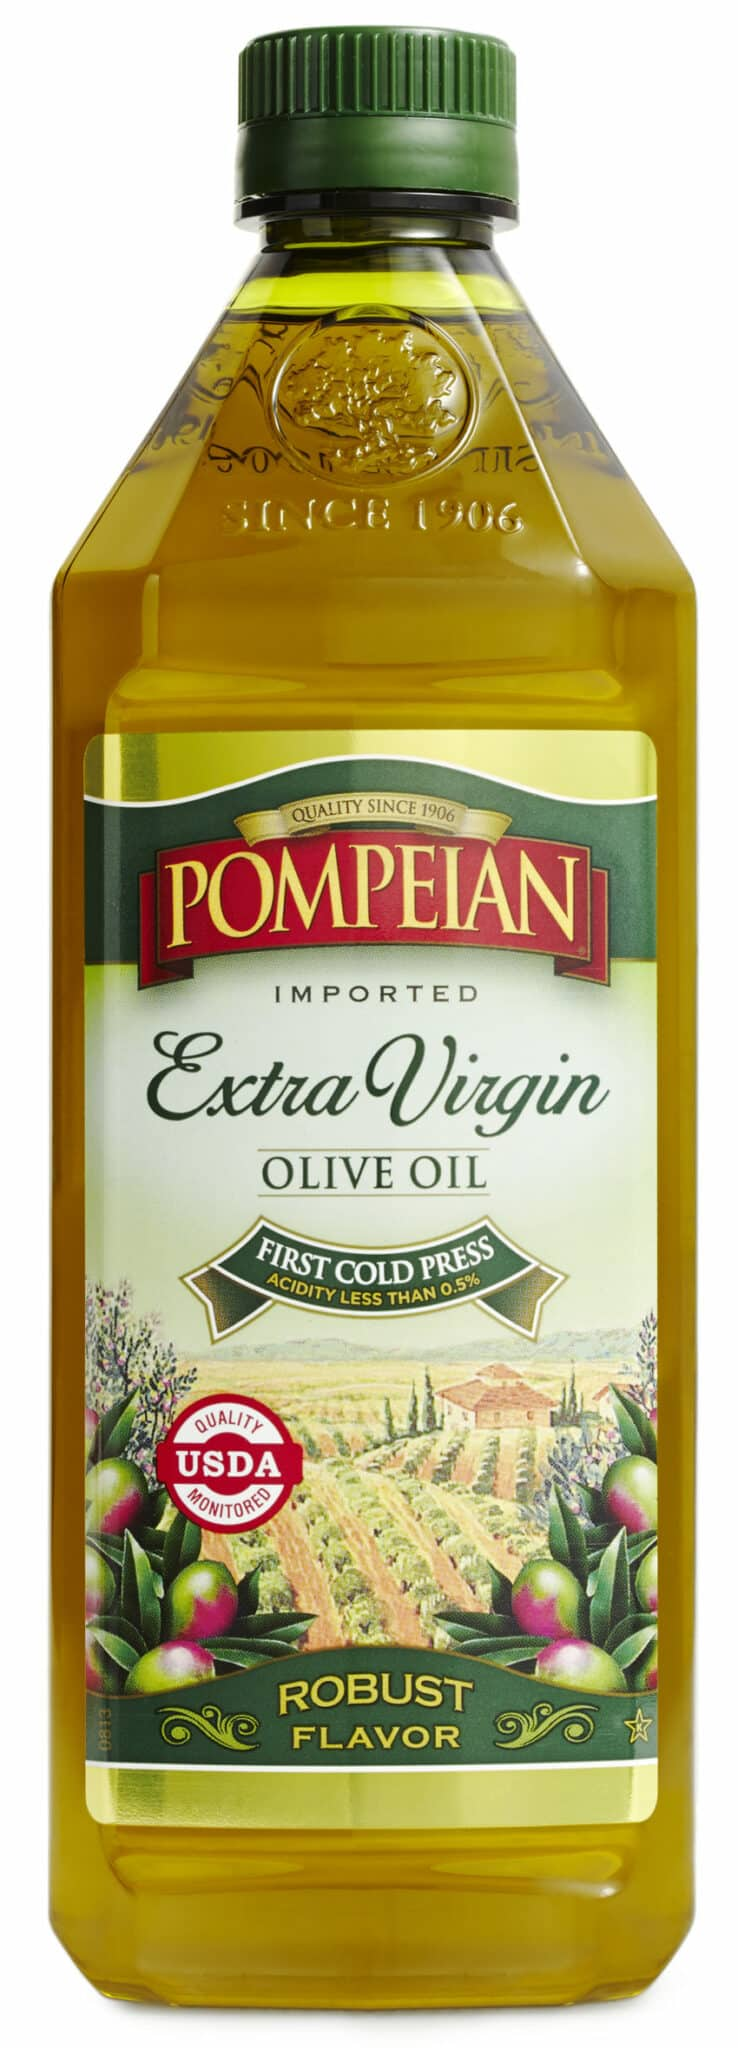 Celebrate National Olive Oil Month With Pompeian